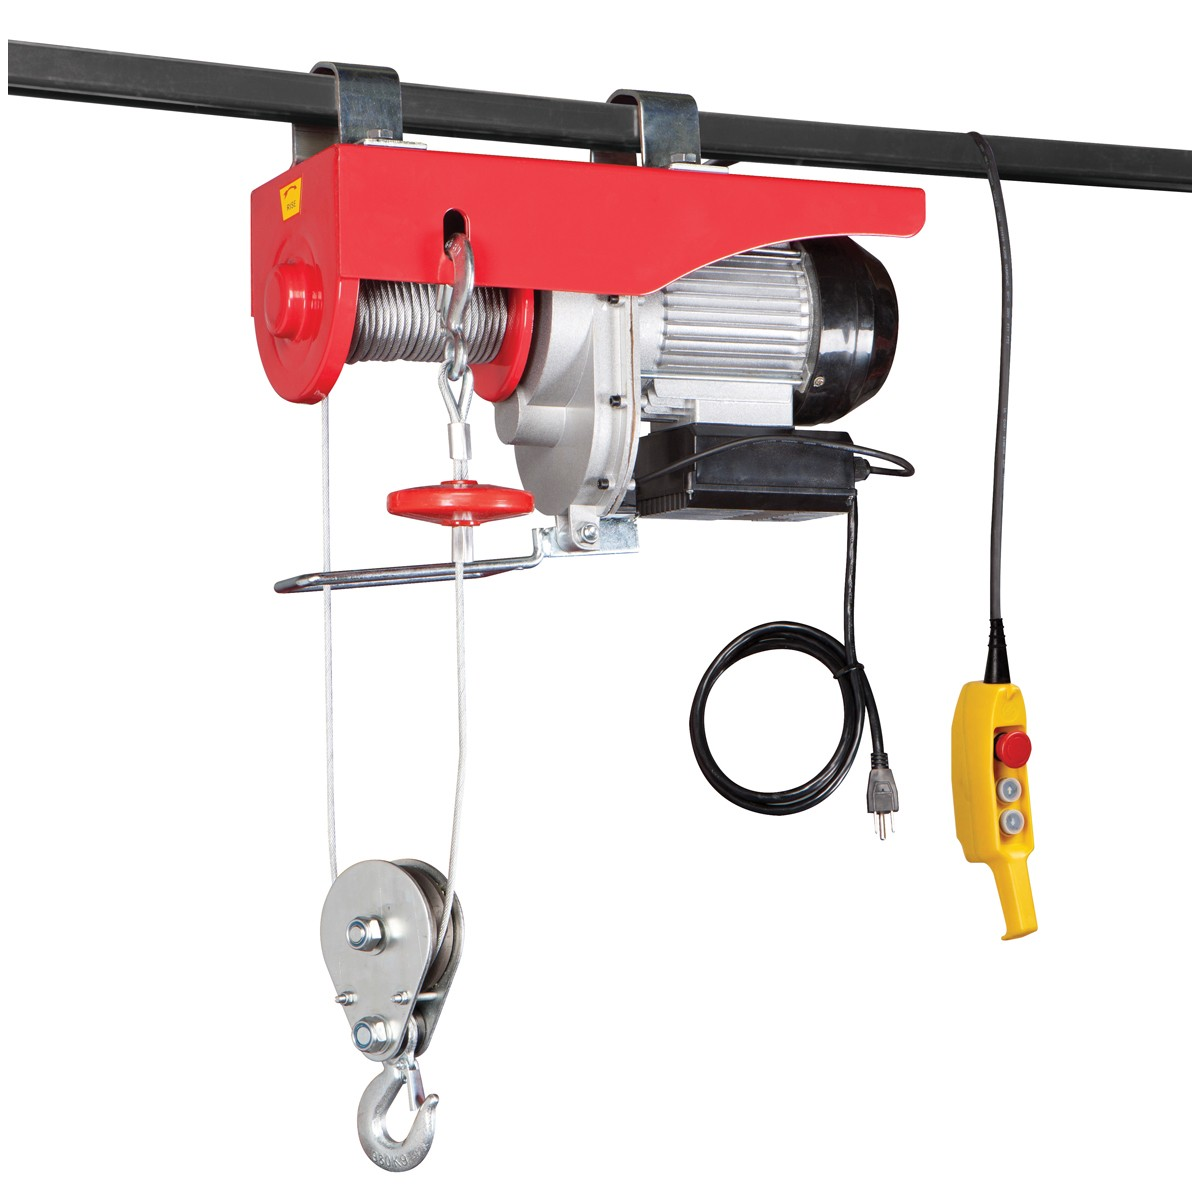 wiring diagram on electric lifting tools pa 1000 mini electric hoist  winch 1000 kg - buy     on